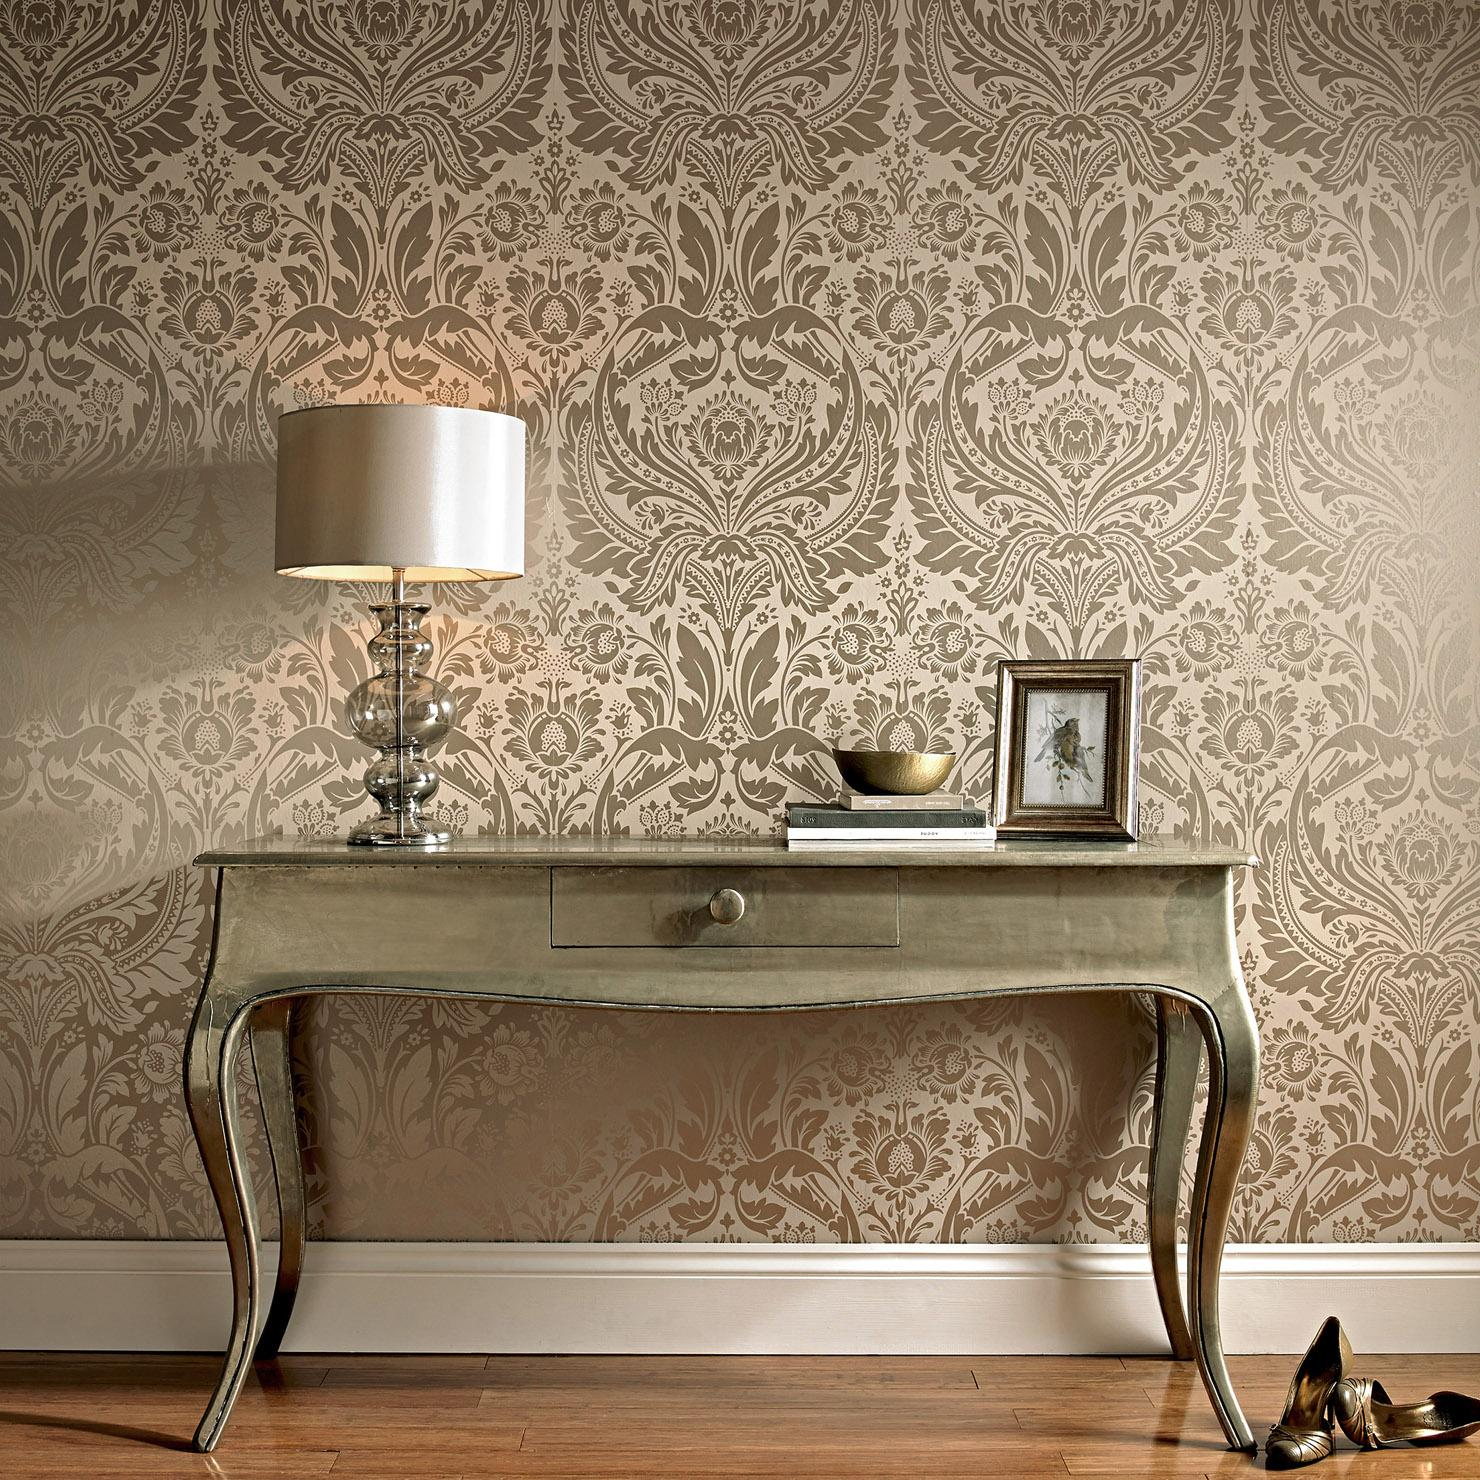 Great classic wallpaper with Gilded lampshade and table on bent legs